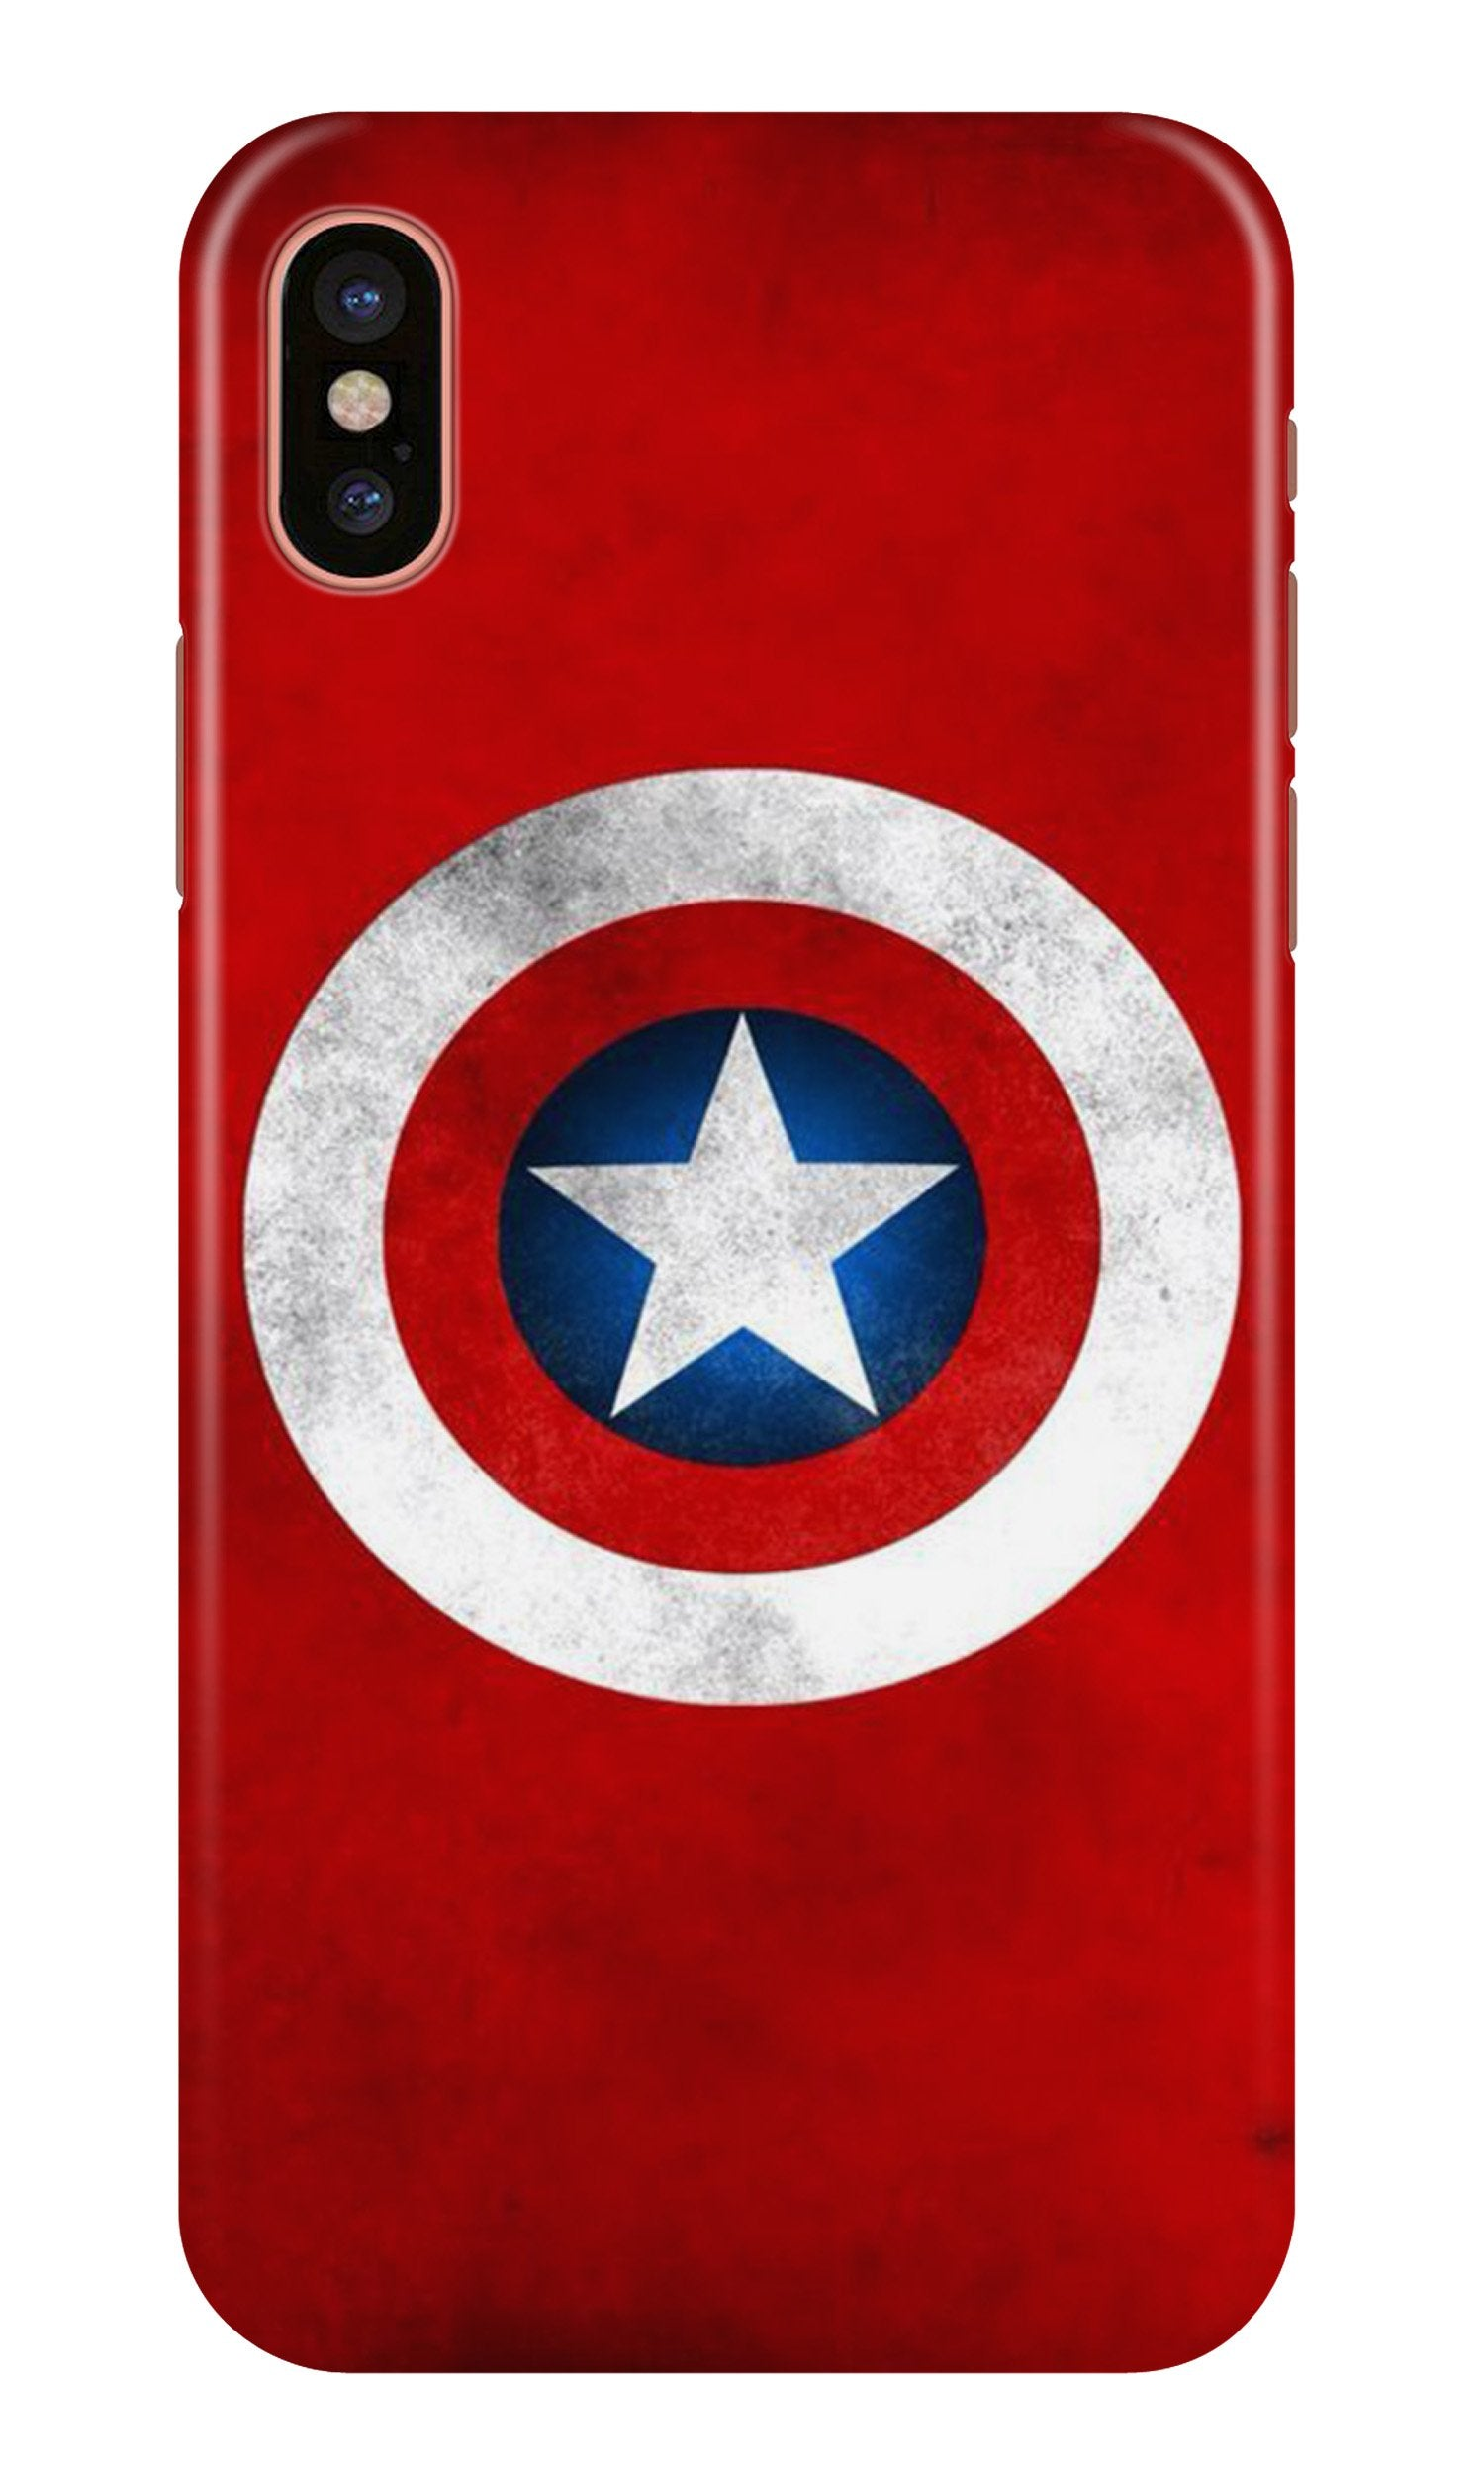 Captain America Case for iPhone Xr (Design No. 249)